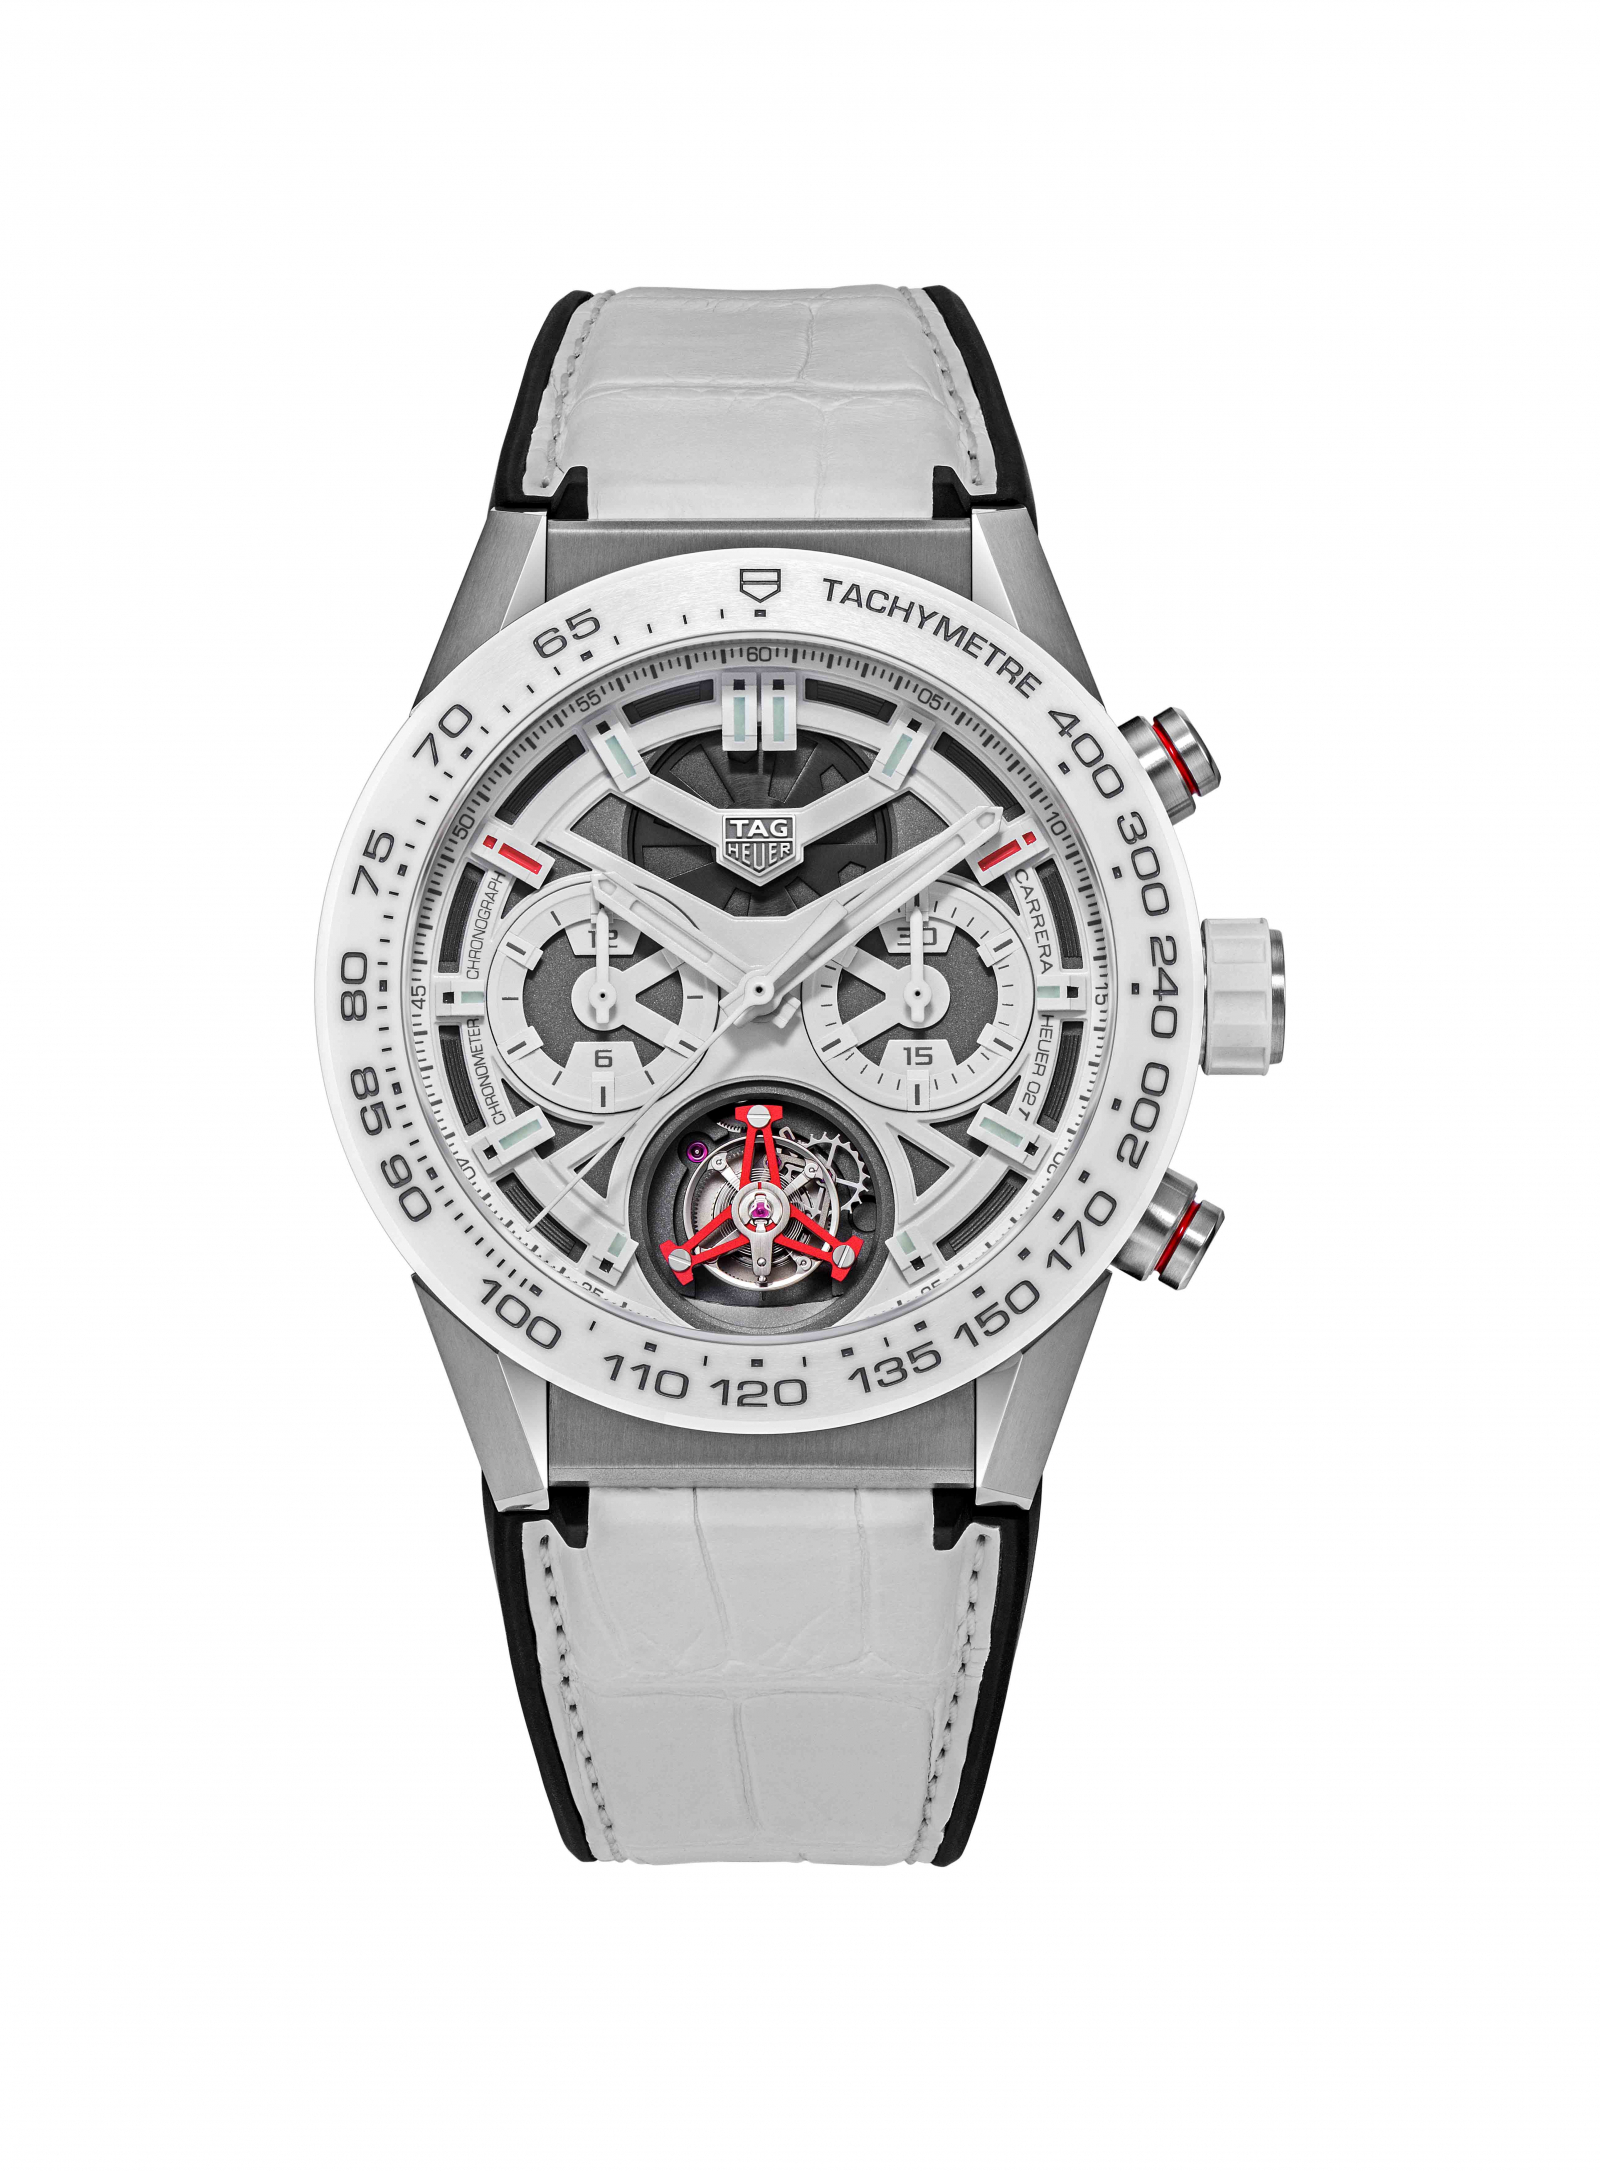 A Ginza Special Edition of the TAG Heuer Carrera Tourbillon